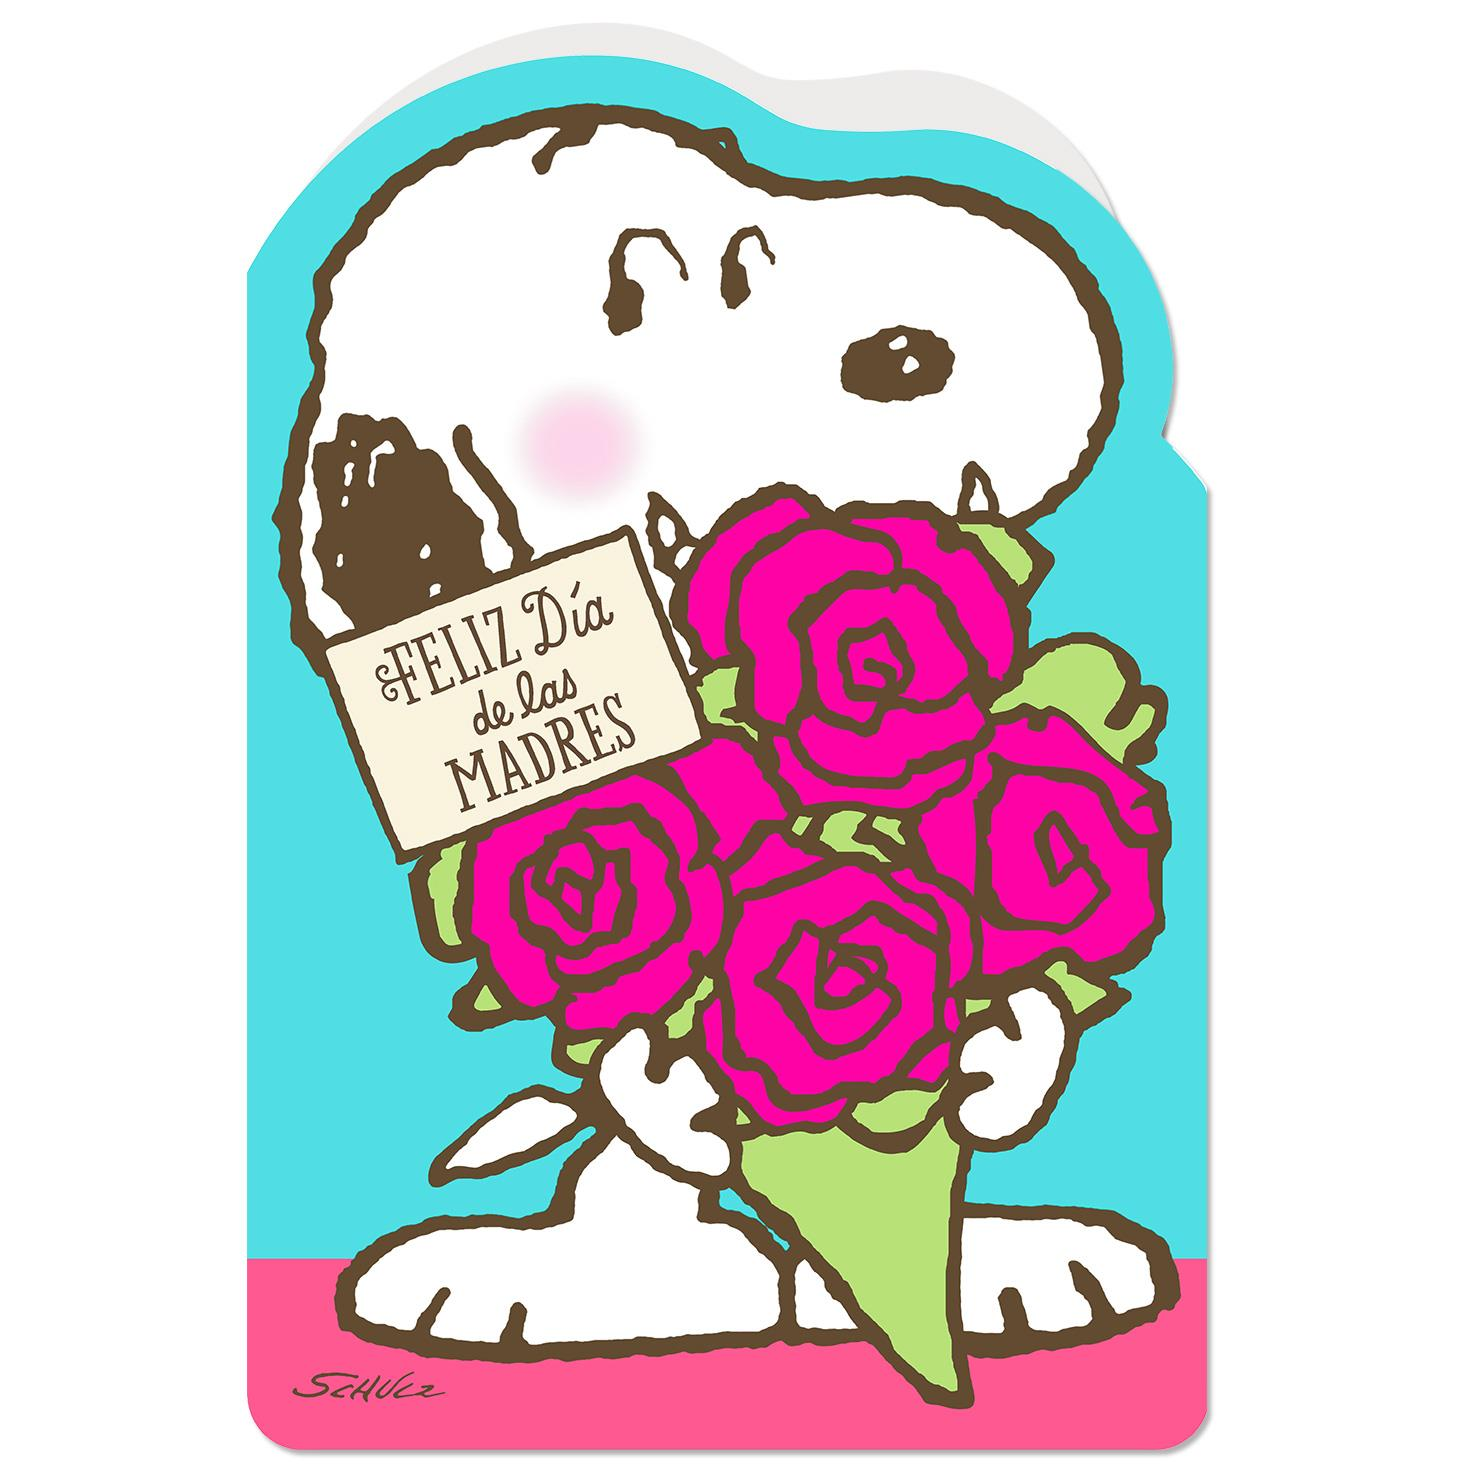 peanuts snoopy great mom spanish language jumbo mothers day card 1925 greeting cards hallmark - Snoopy Christmas Gifts